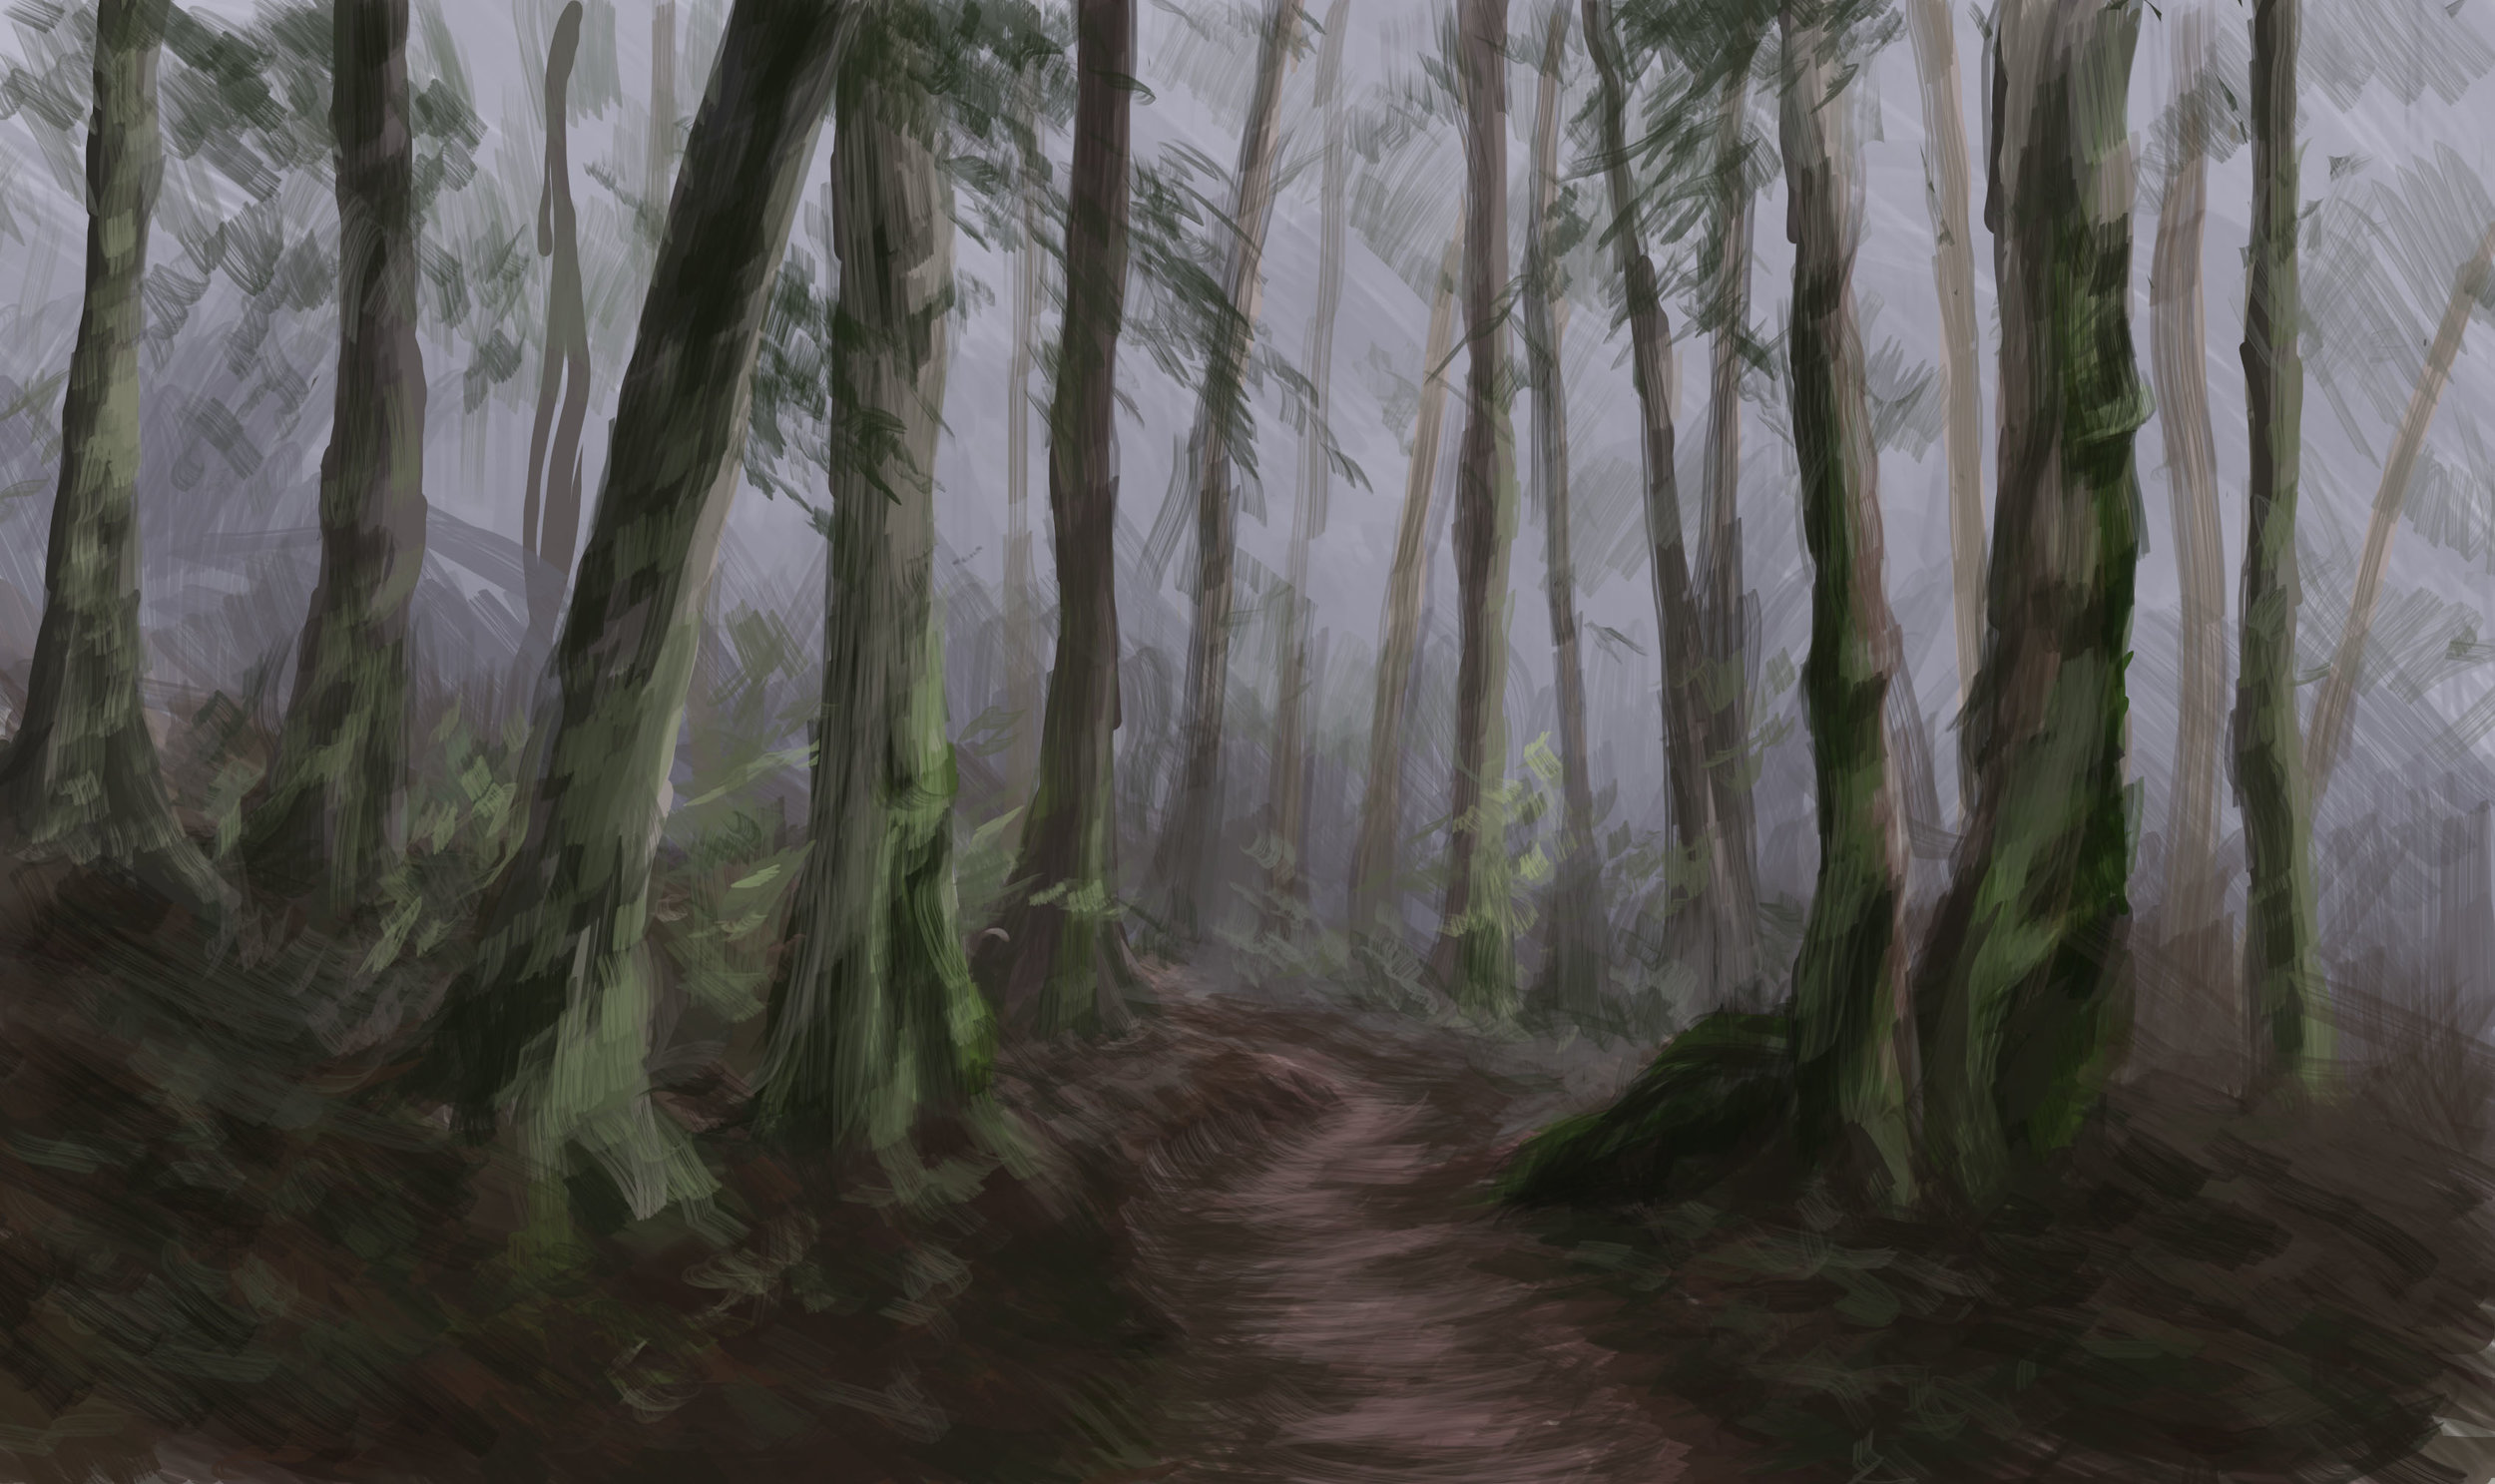 Dreary Forest Environment